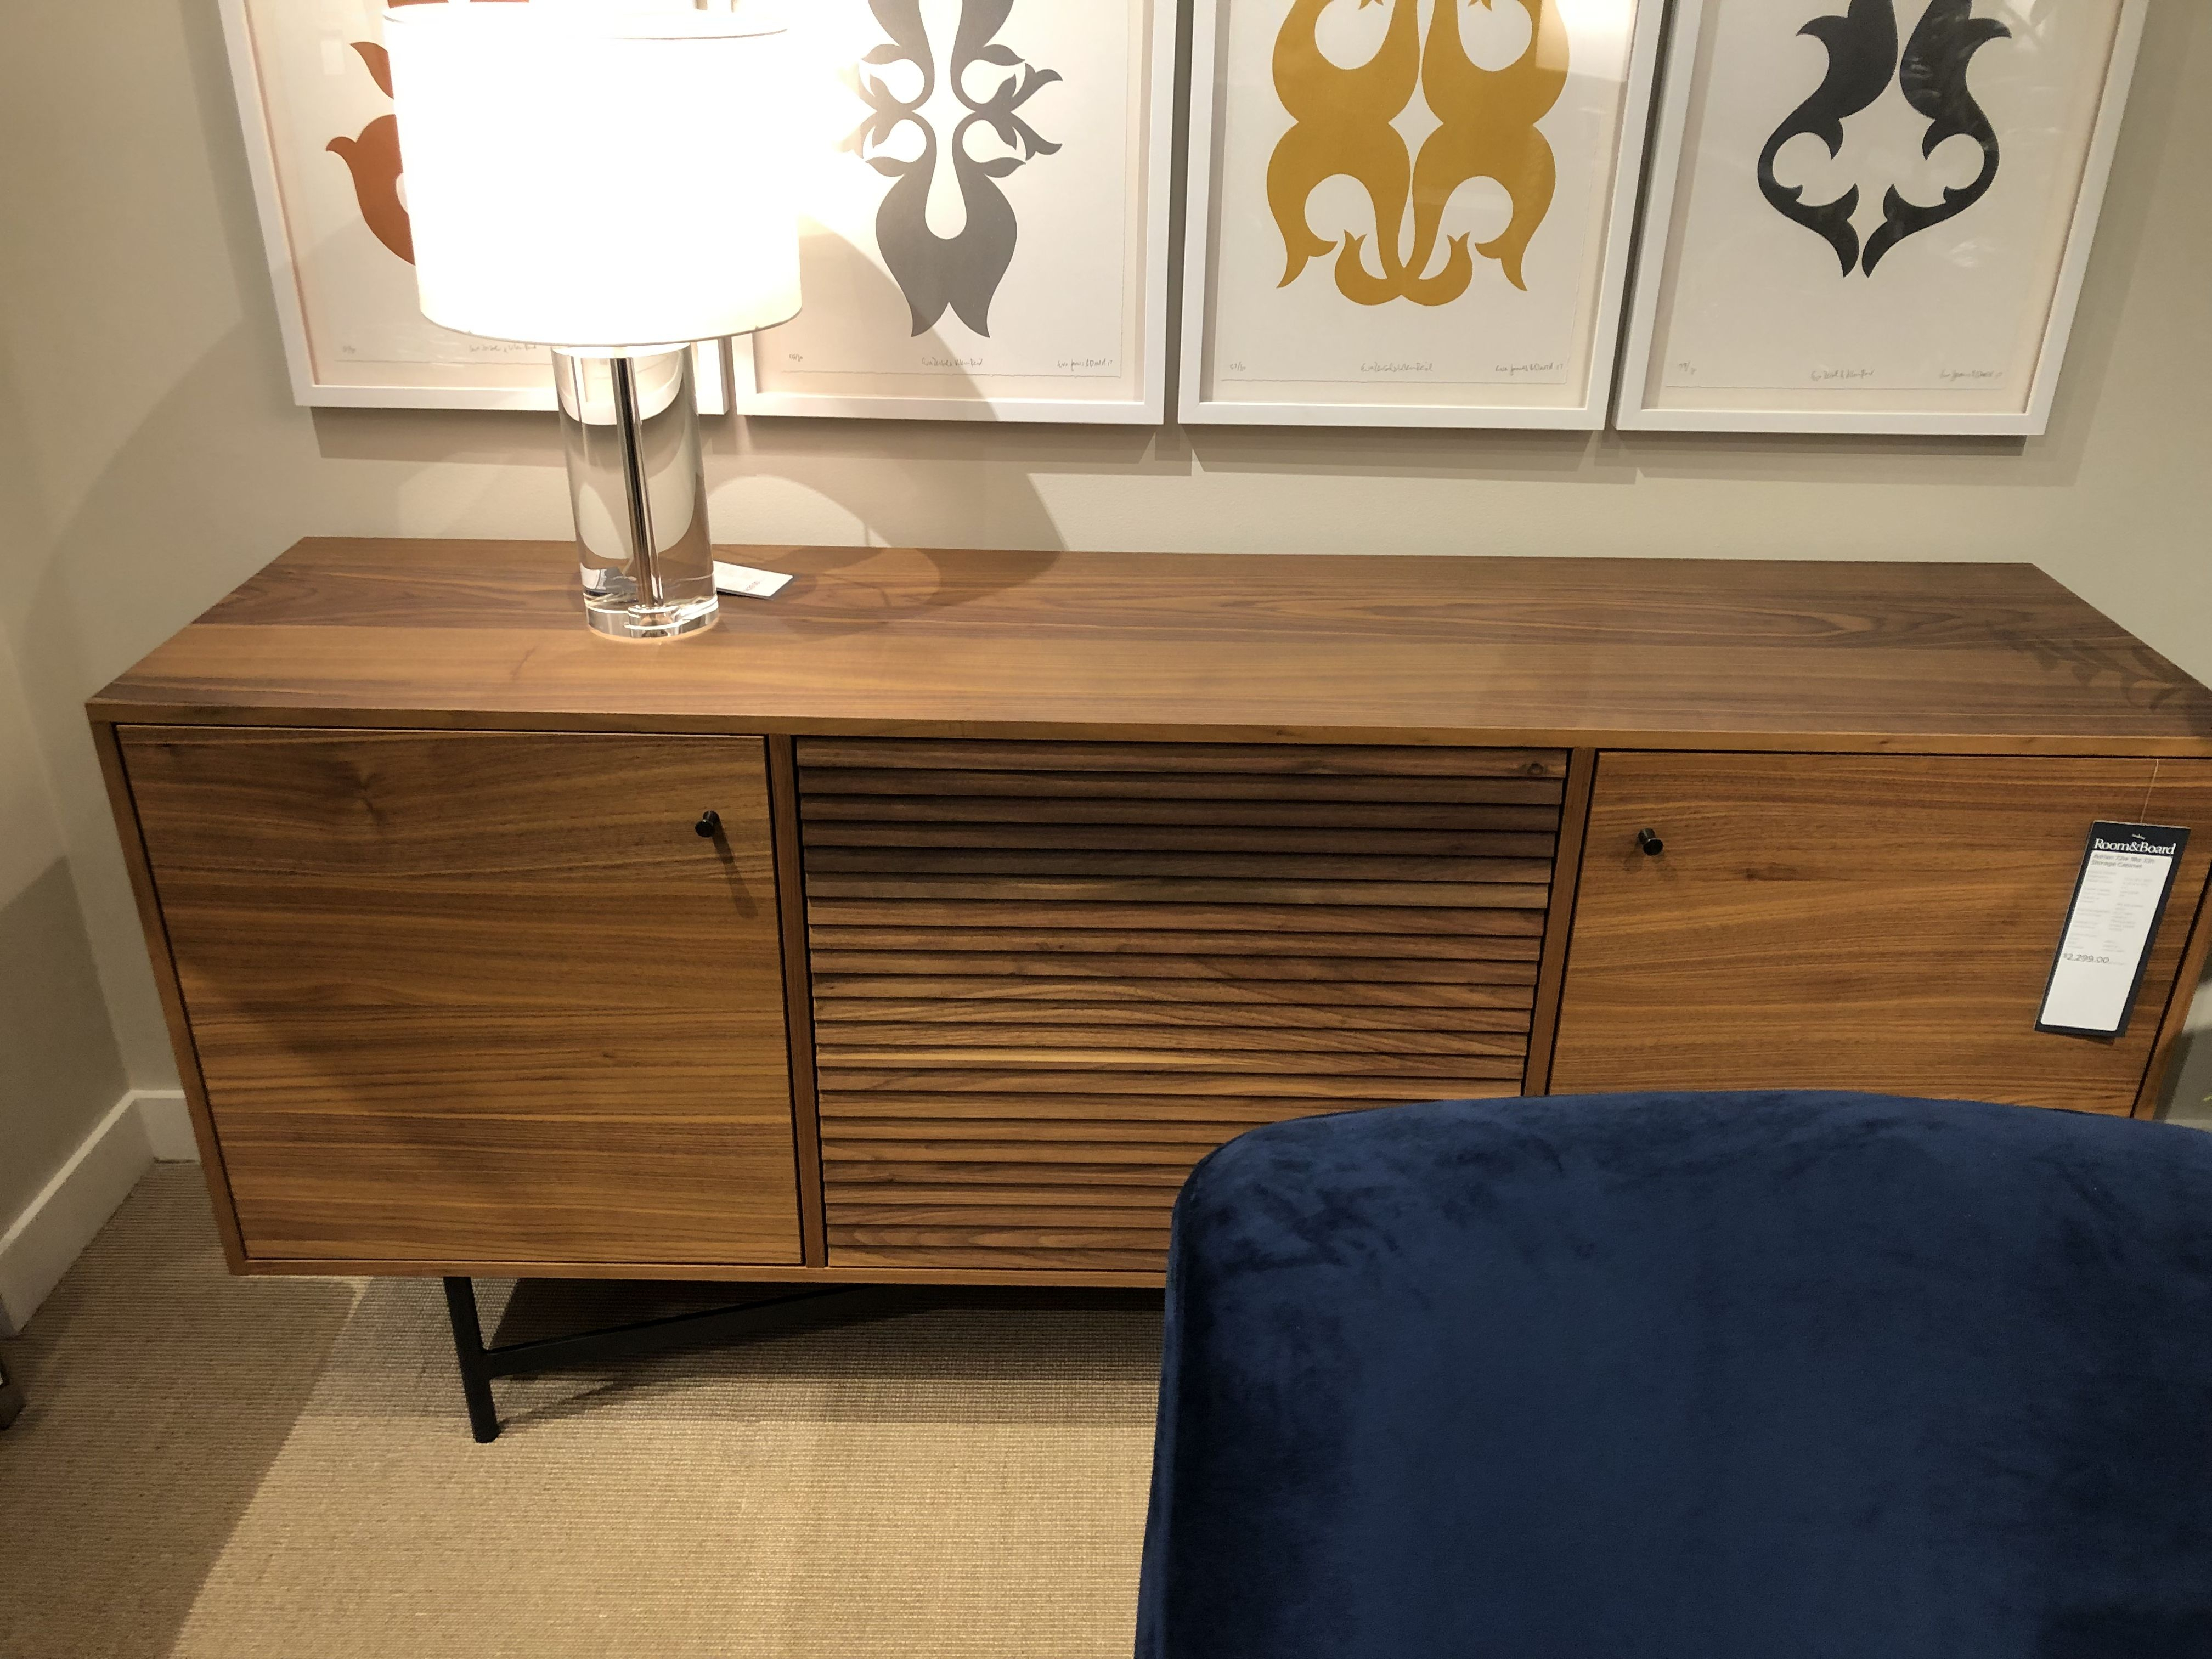 Inspiration about Pinjinnyn Jacob On Living & Dining Rooms In 2019 With Regard To Recent Rosson Sideboards (#20 of 20)